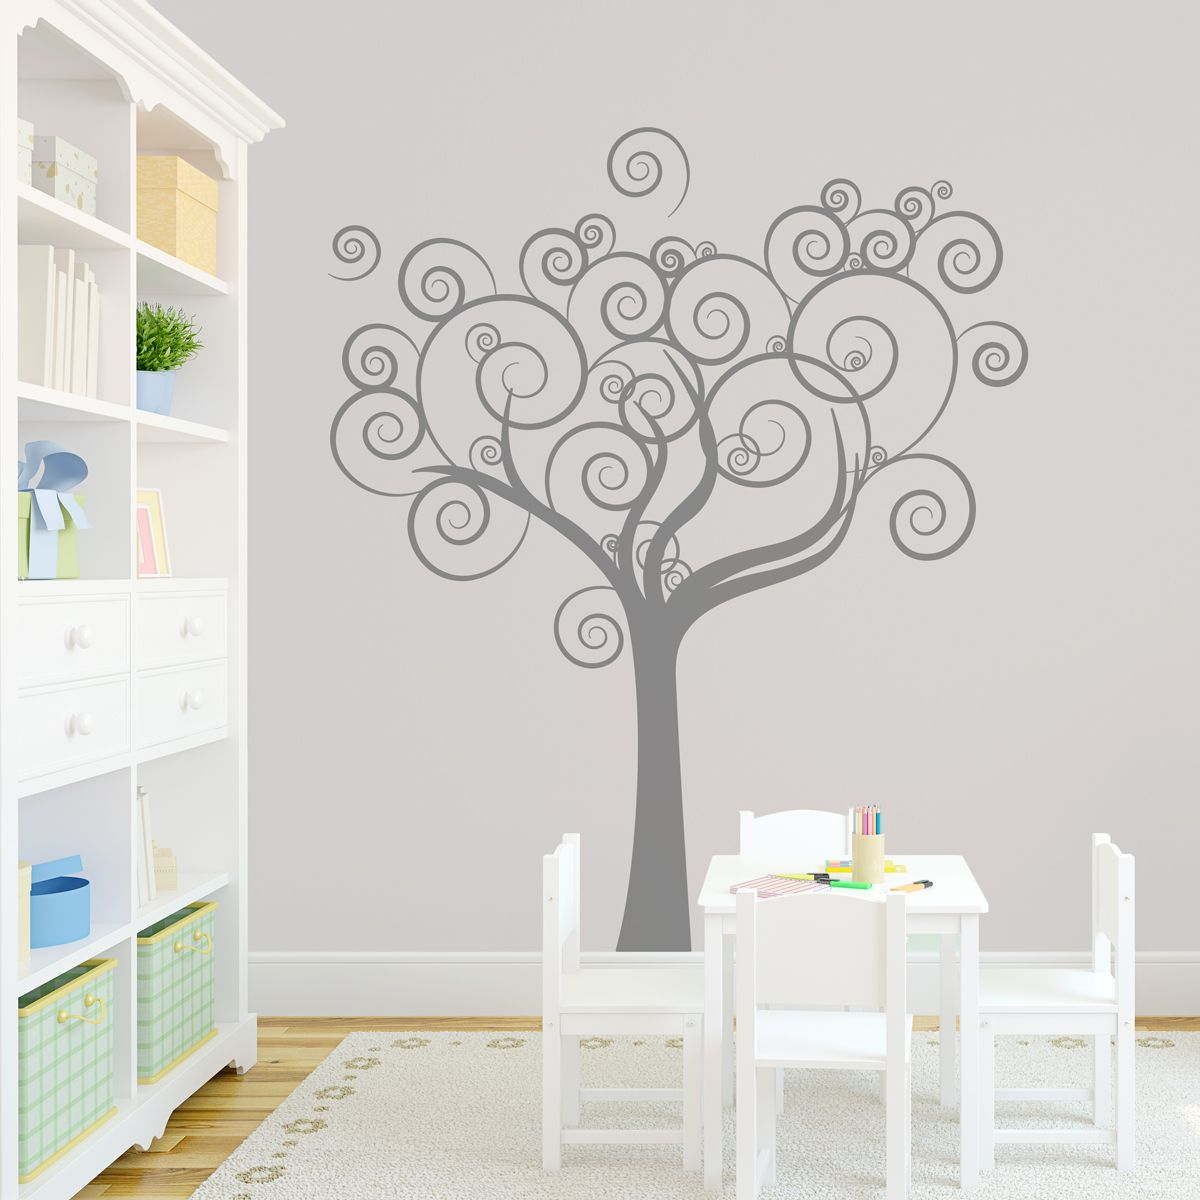 vinyl family tree wall decals | Whimsical Love Tree Wall Decal  sc 1 st  Pinterest & Whimsical Love Tree Wall Decal | Pinterest | Family tree wall decal ...